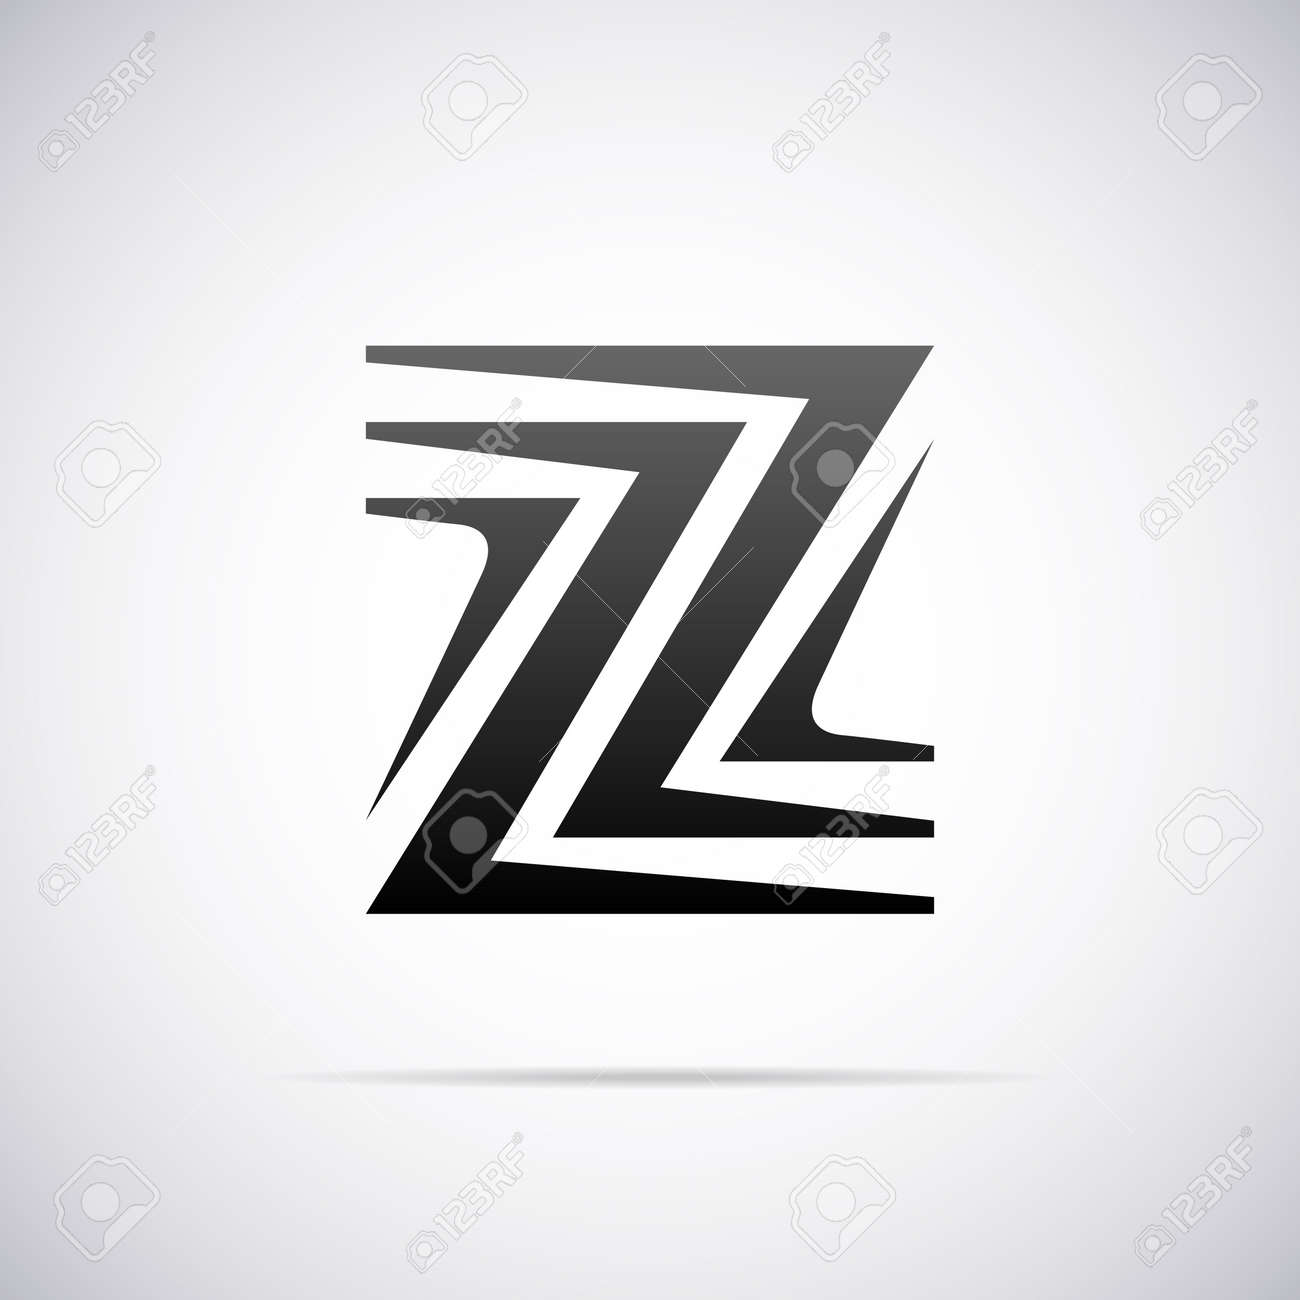 Logo For Letter Z Design Template Vector Illustration Stock Vector    43081555